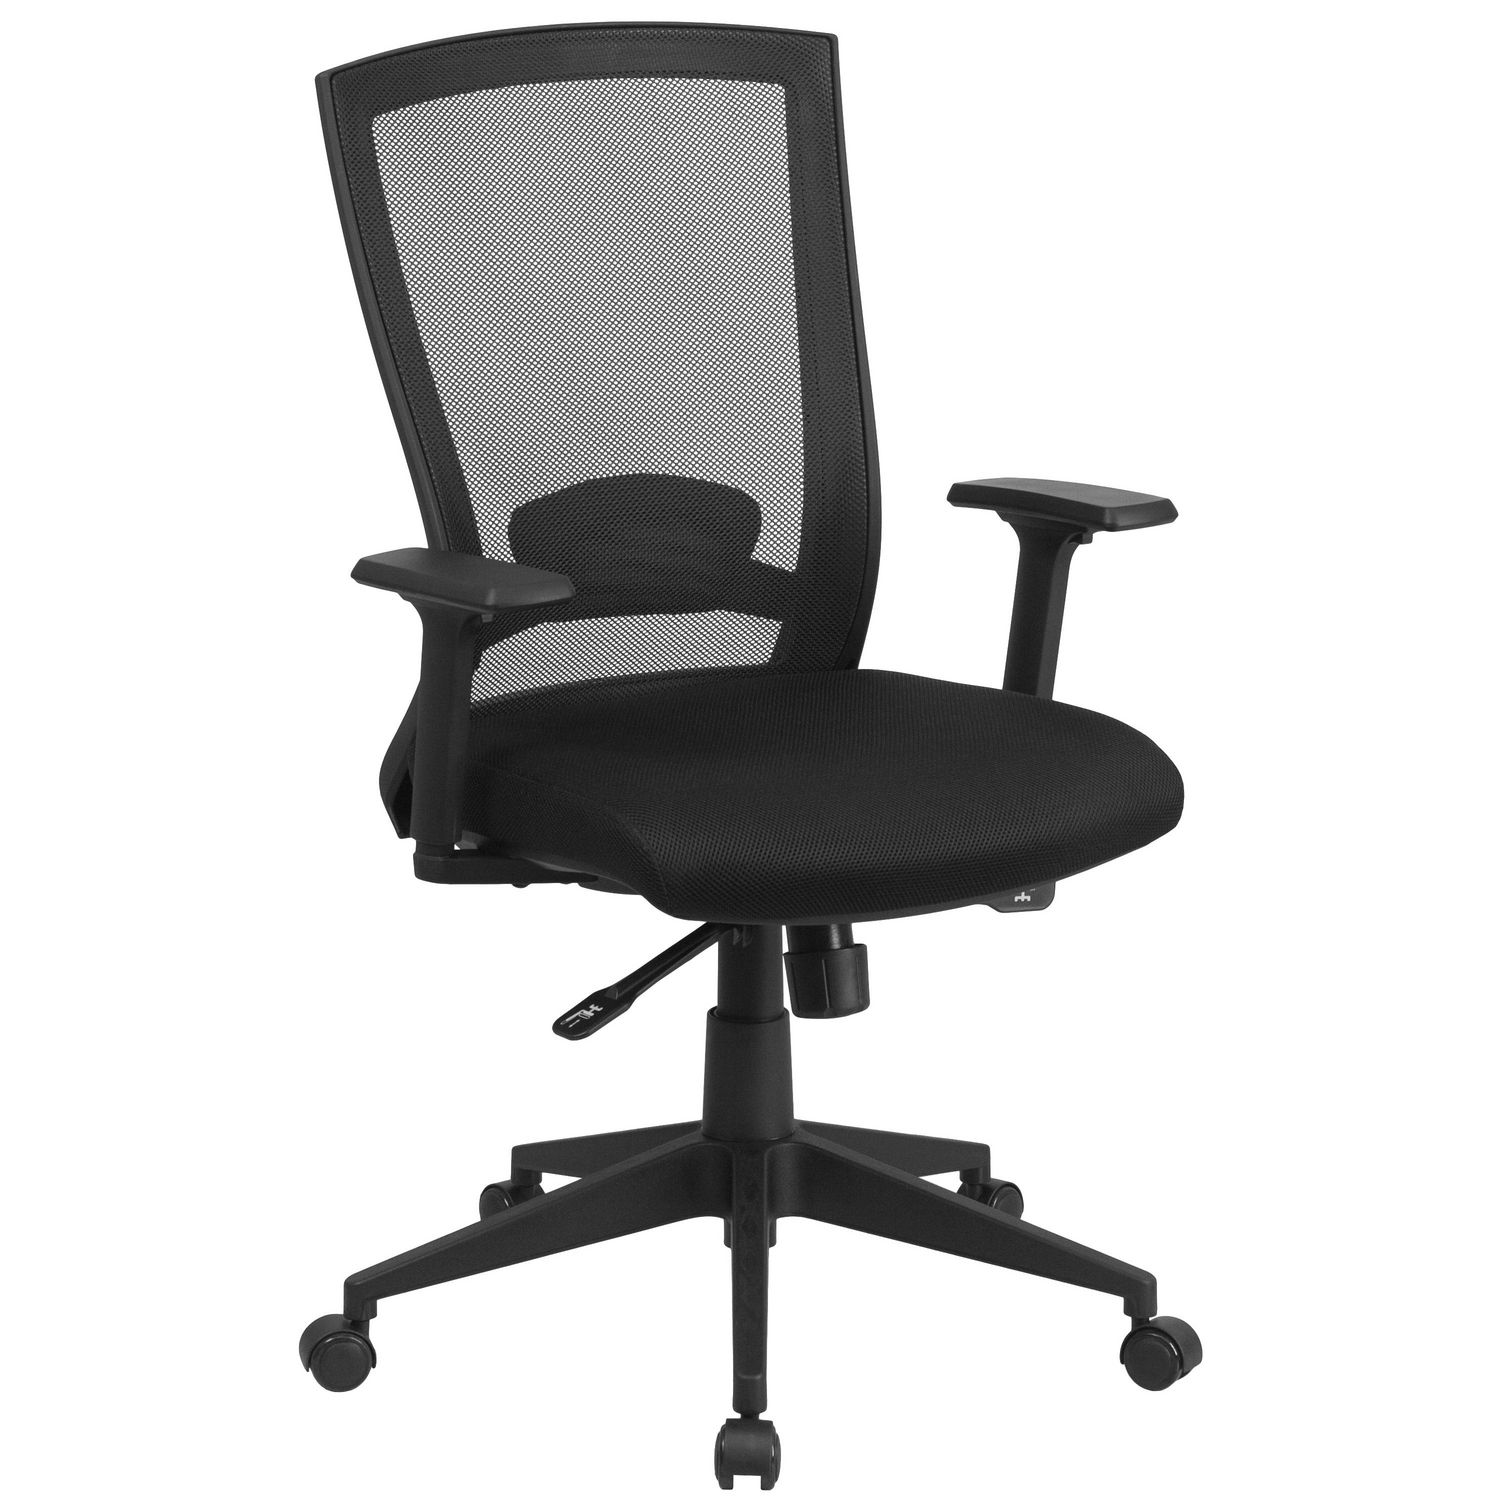 Brilliant Mid Back Black Mesh Executive Swivel Ergonomic Office Chair With Back Angle Adjustment And Adjustable Arms Home Interior And Landscaping Transignezvosmurscom